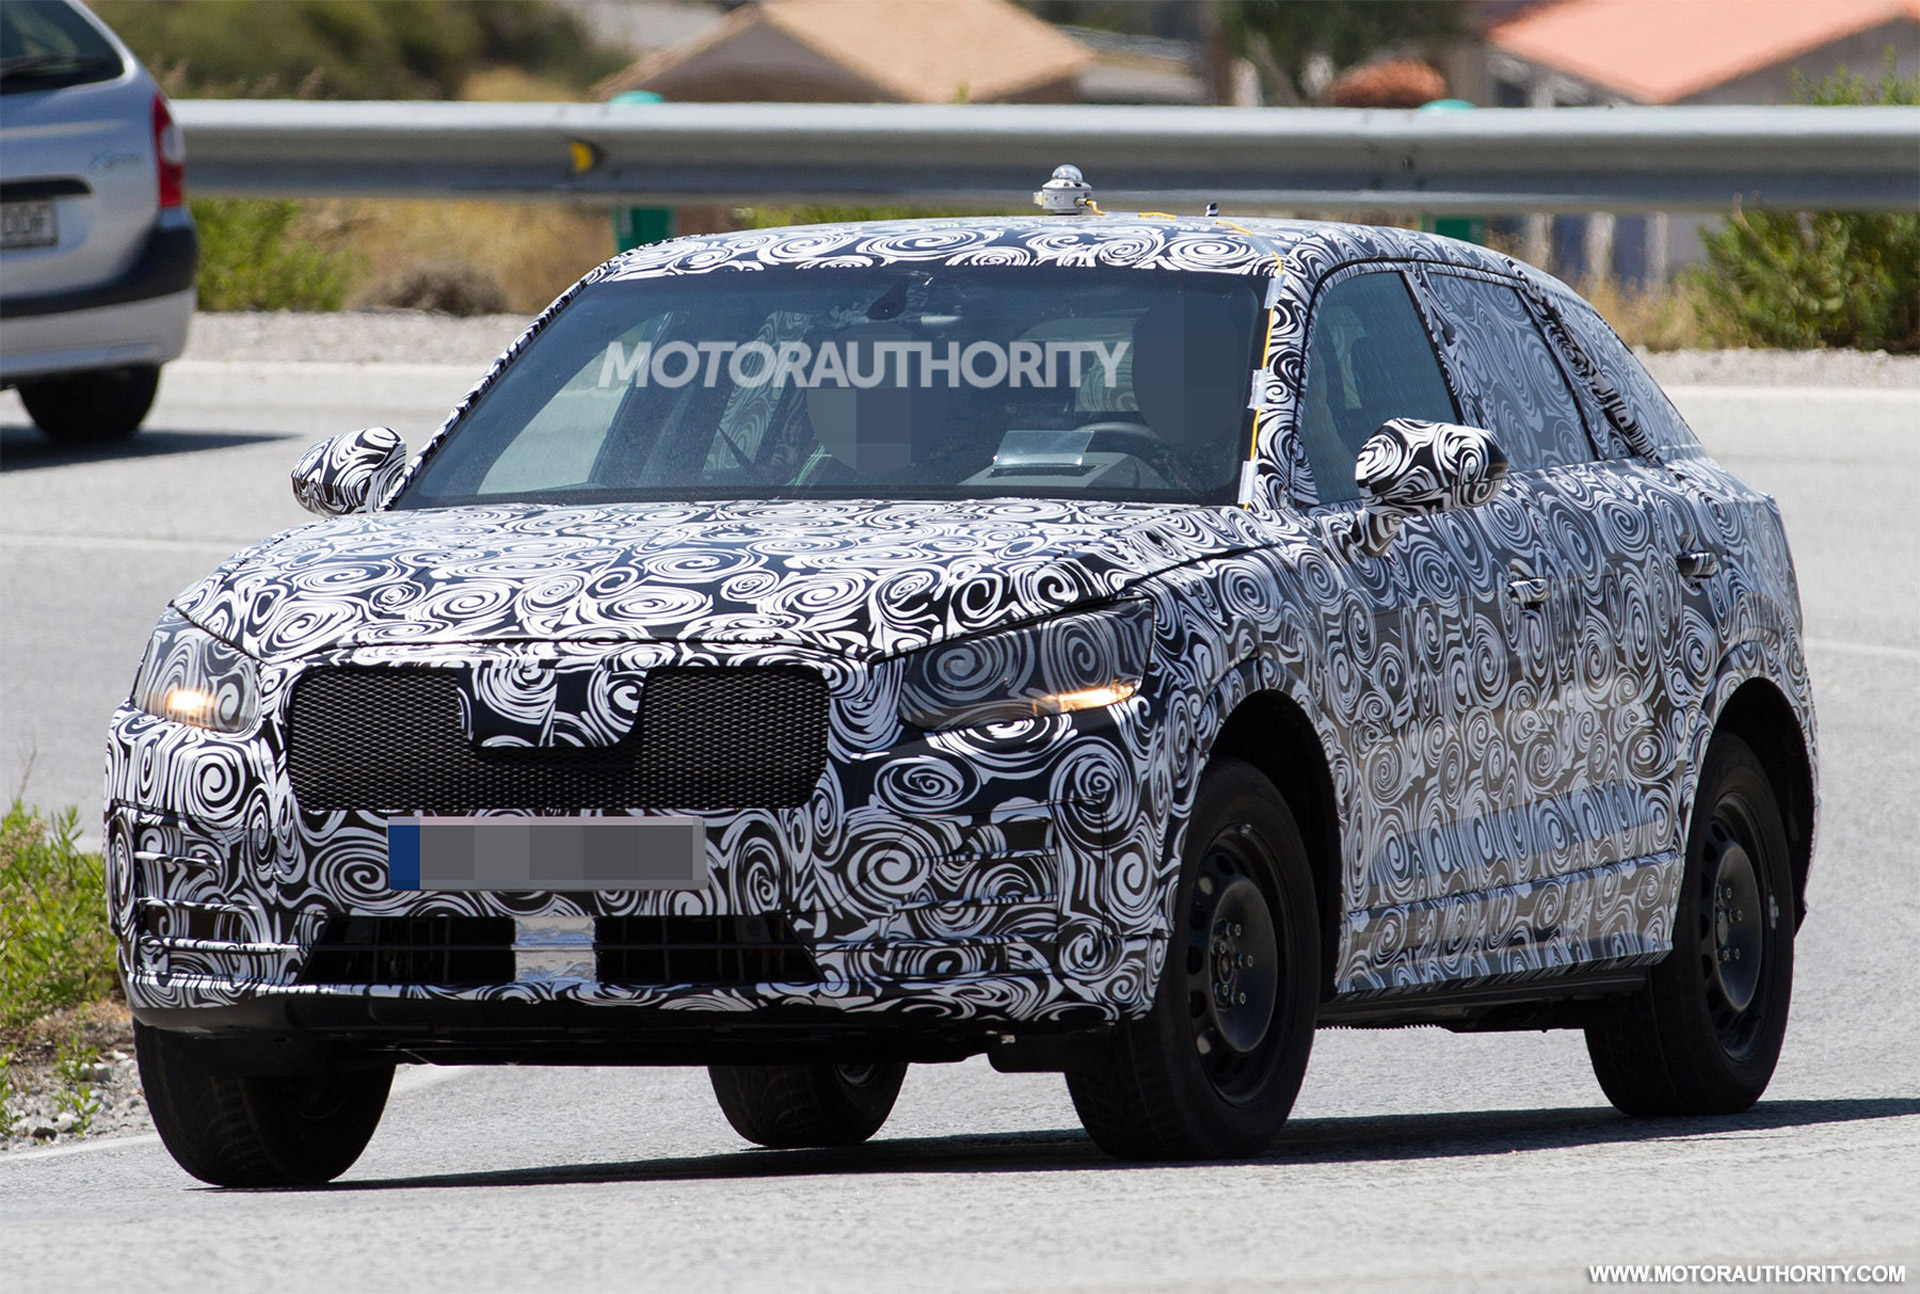 Spied AGAIN! Have A Look At The Exclusive PHOTOS Of The Brand New 2016 Audi Q1 2